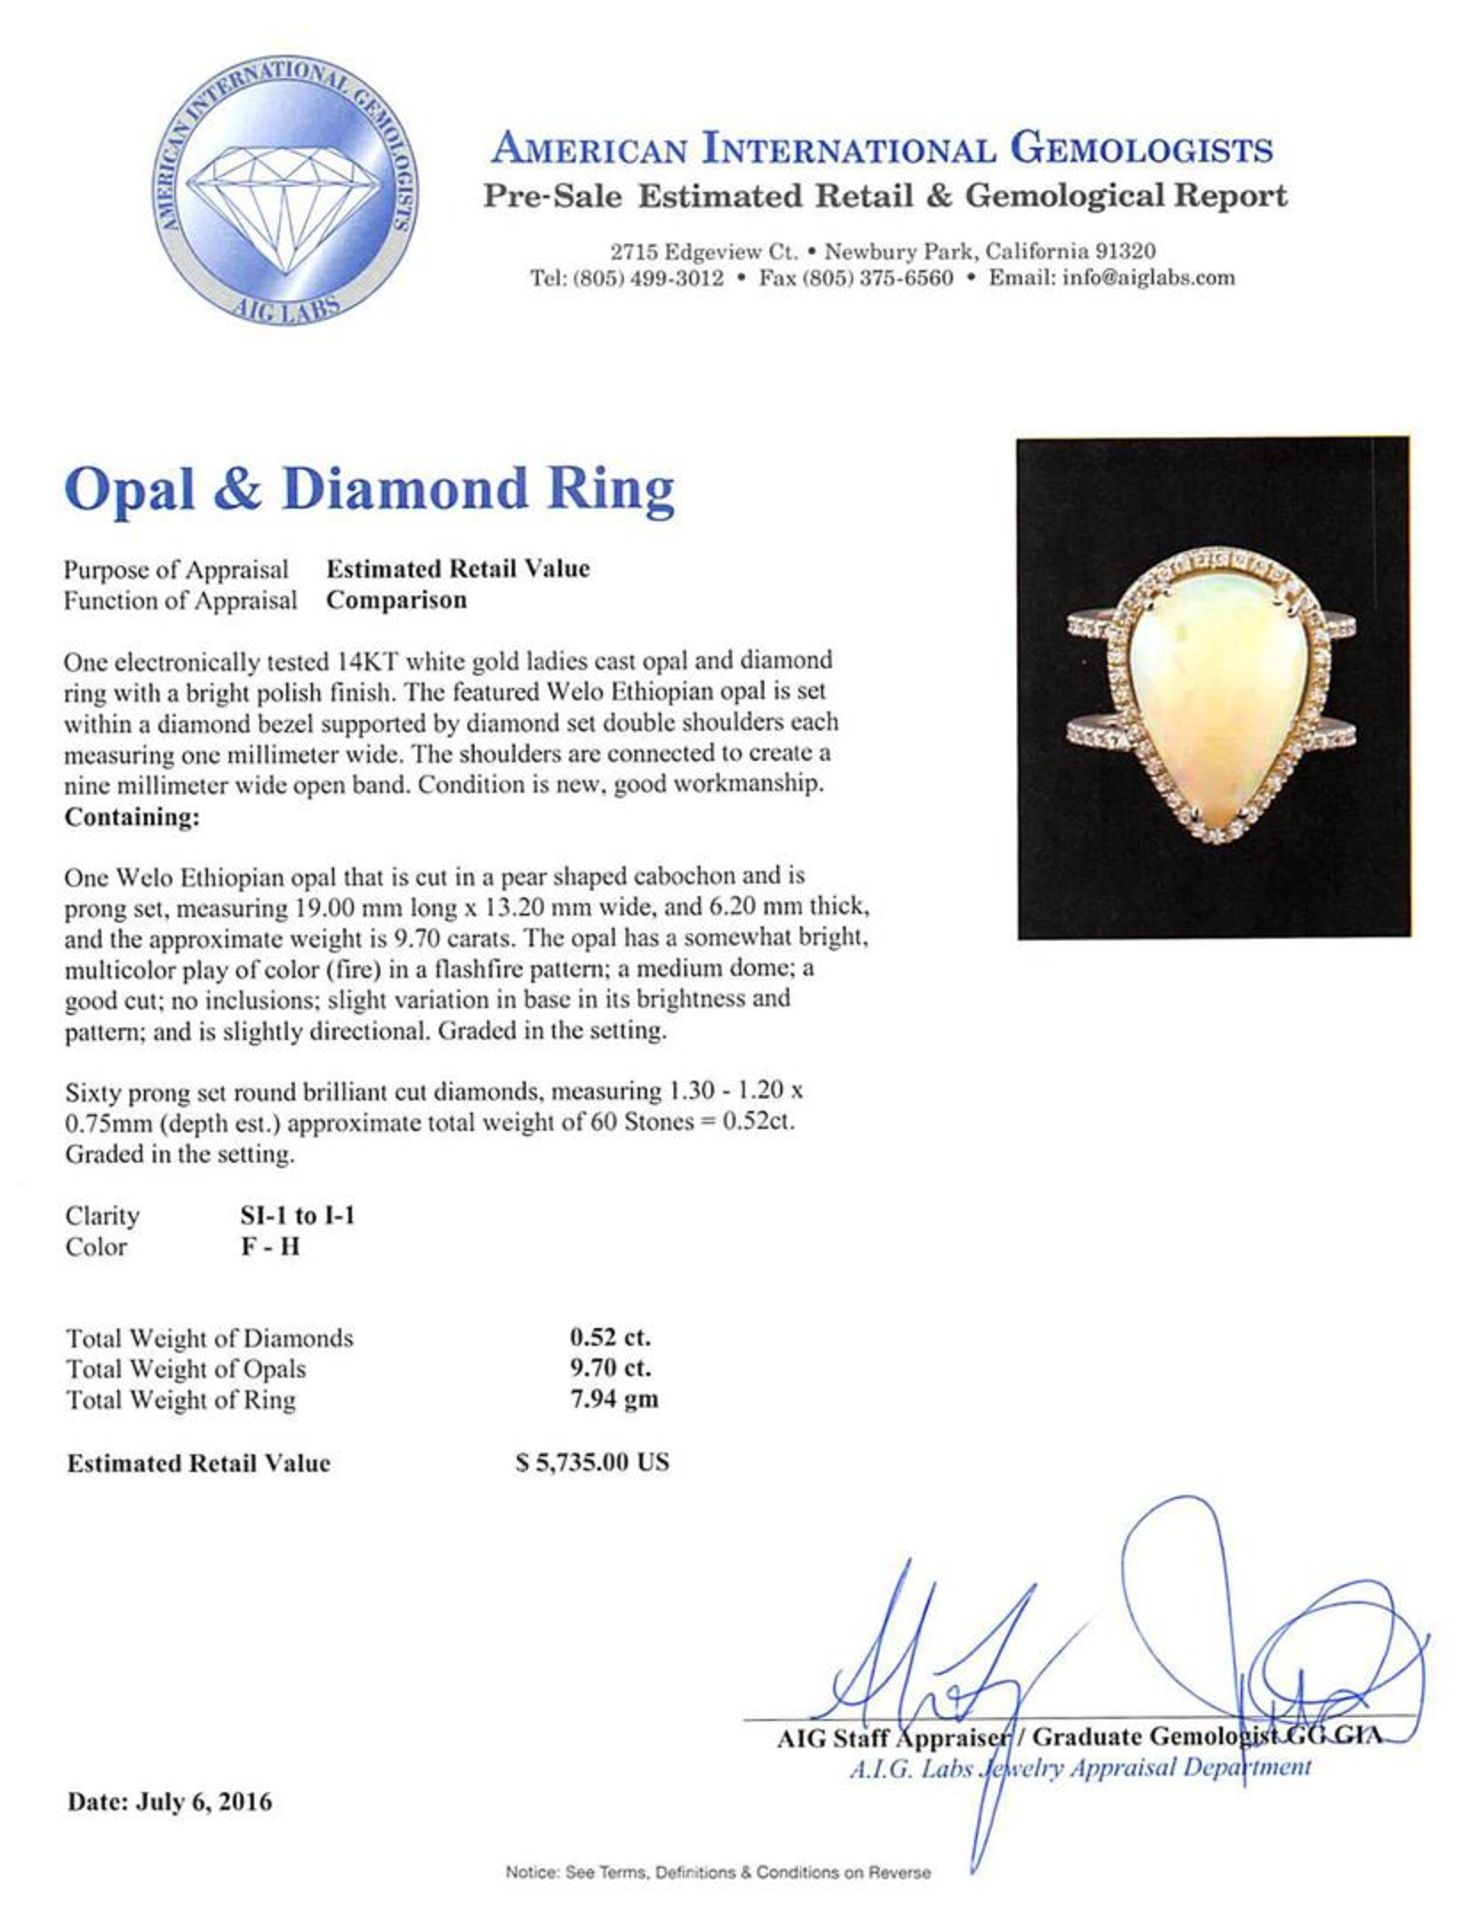 9.70 ctw Opal and Diamond Ring - 14KT White Gold - Image 5 of 5